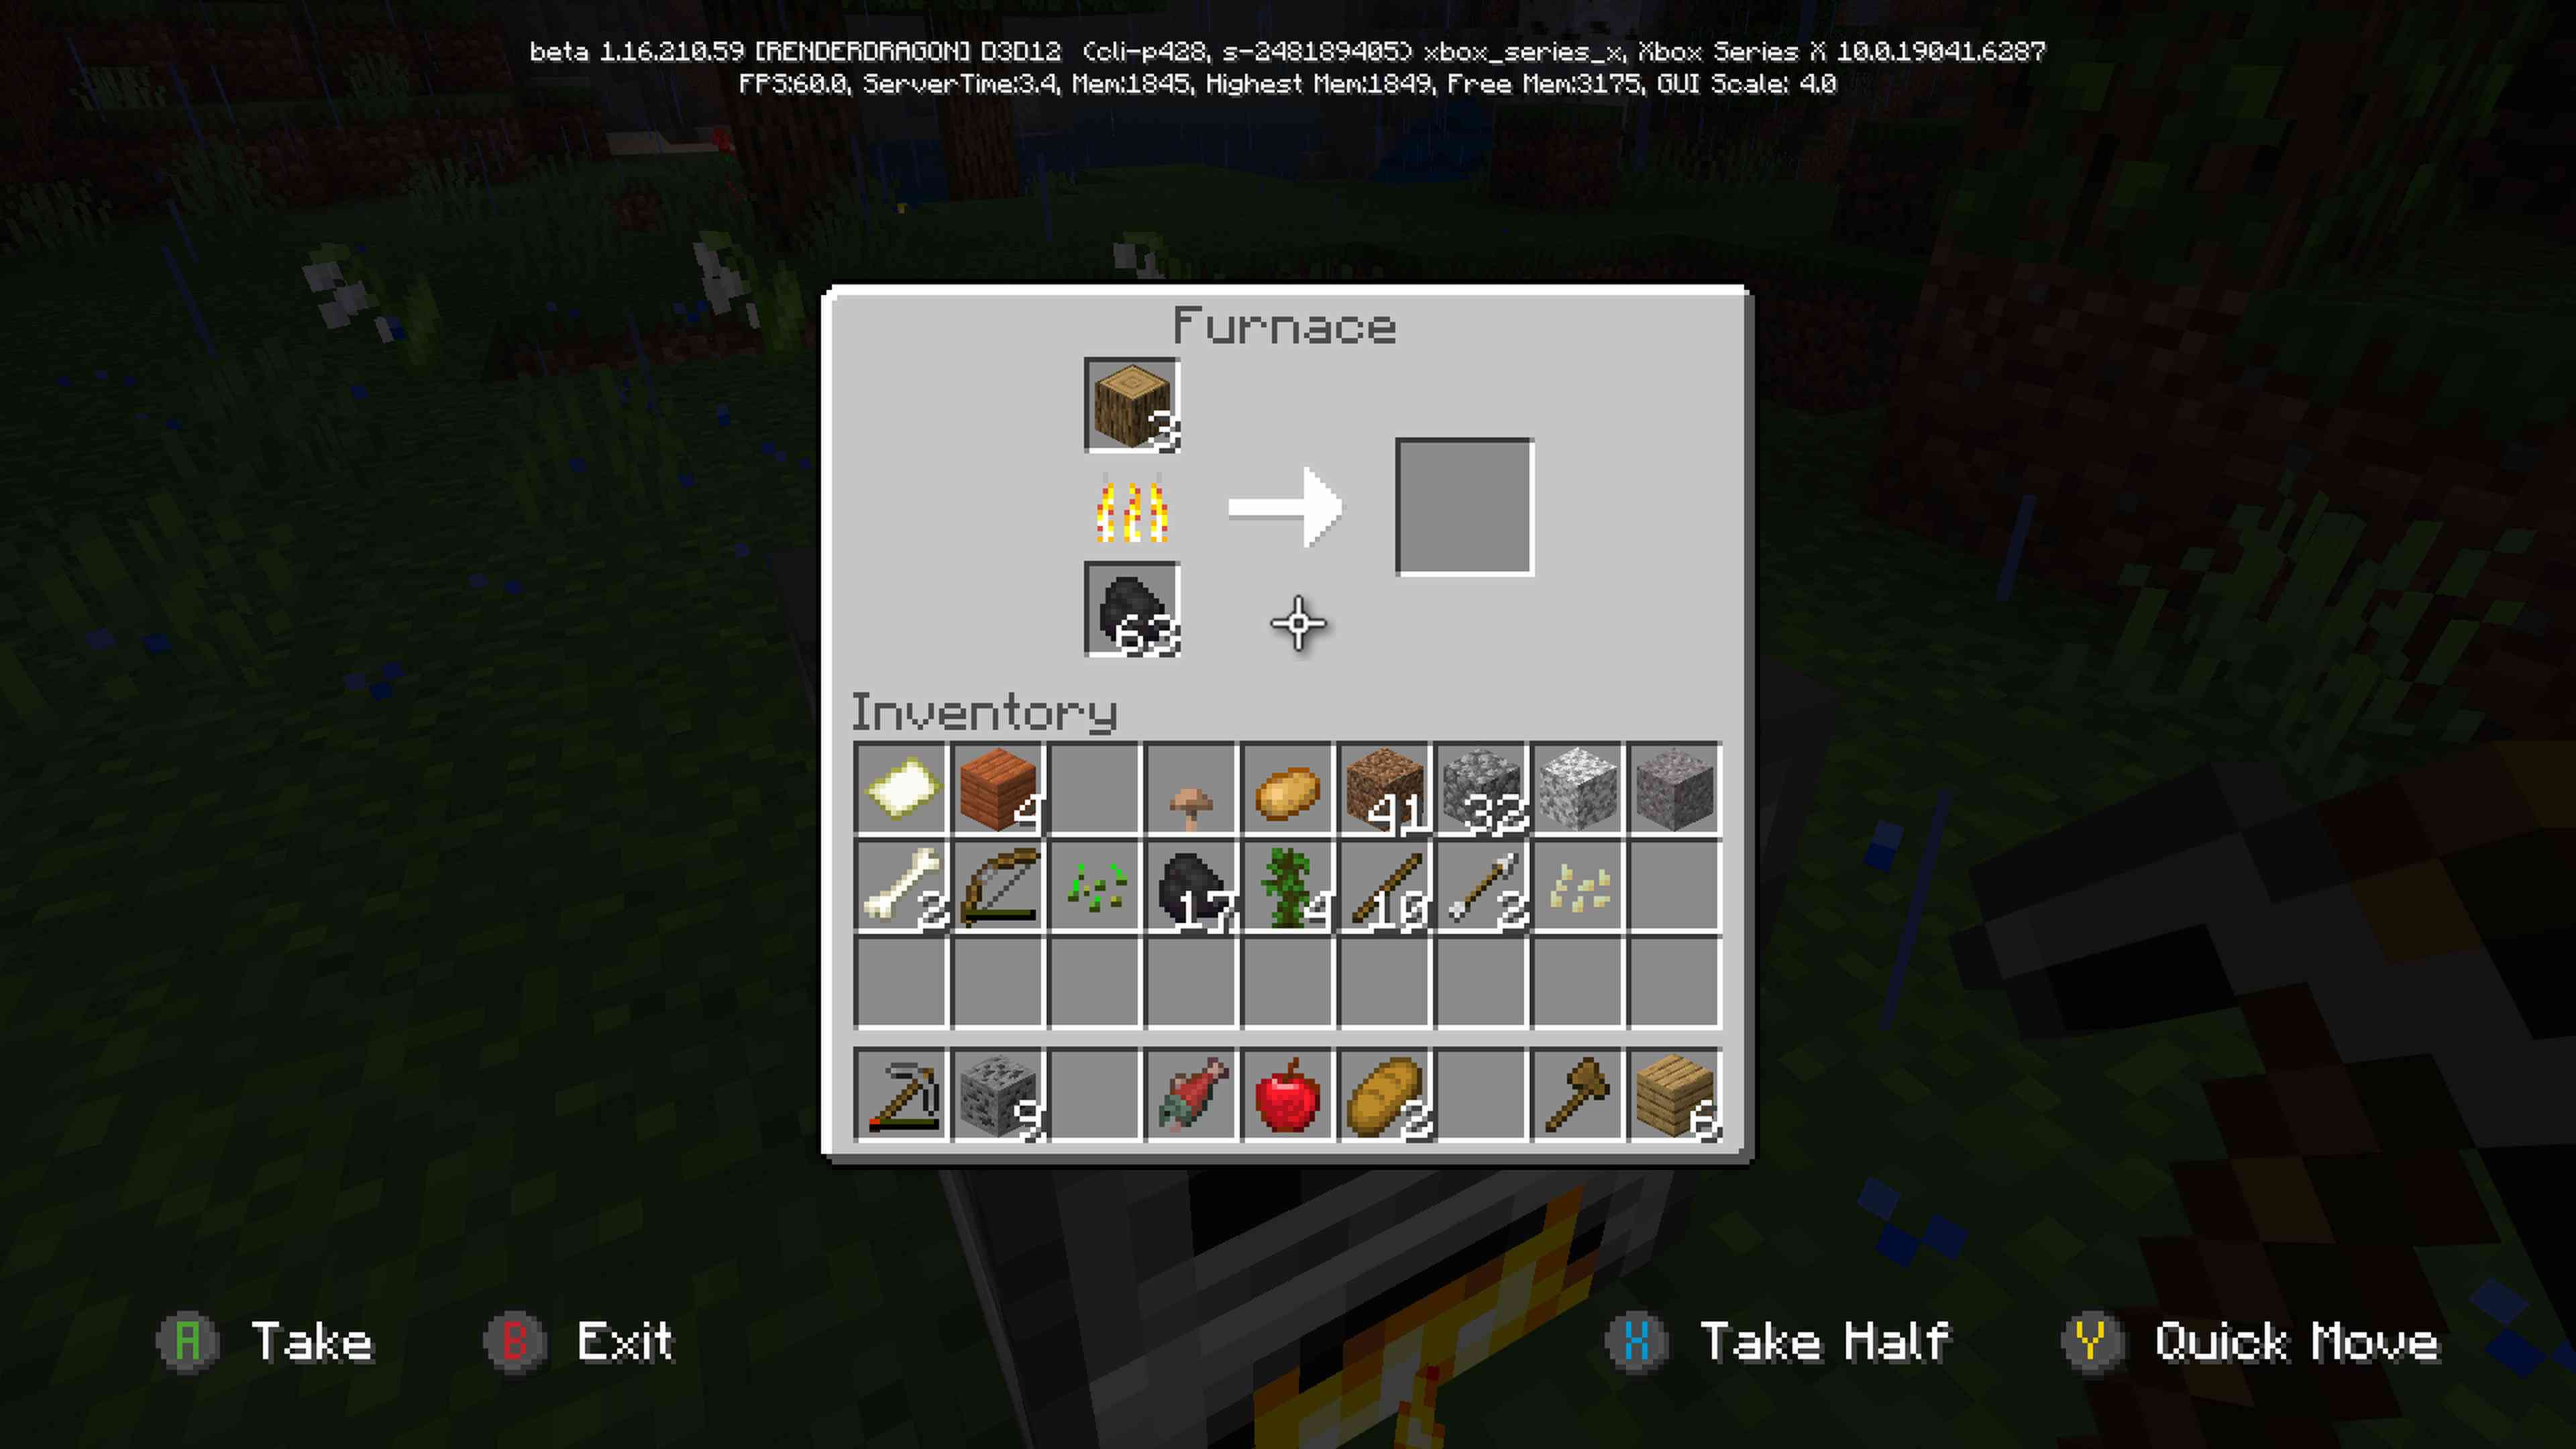 Furnace crafting grid while the flames progress bar grows to indicate fuel is being produced